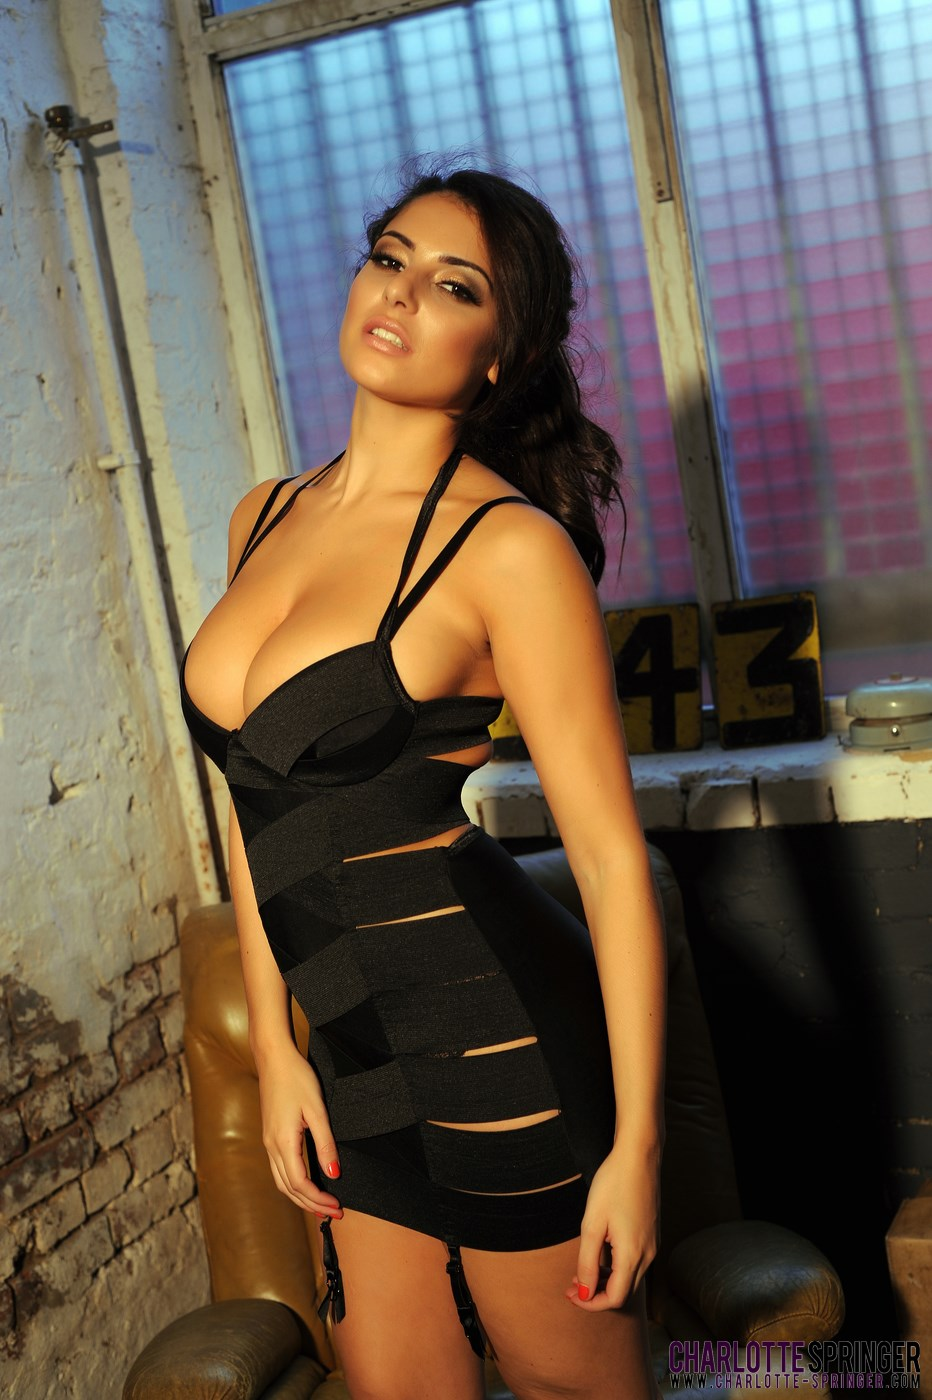 Sexy Black Dress - Charley S teasing in her sexy tight black dress and lingerie ...